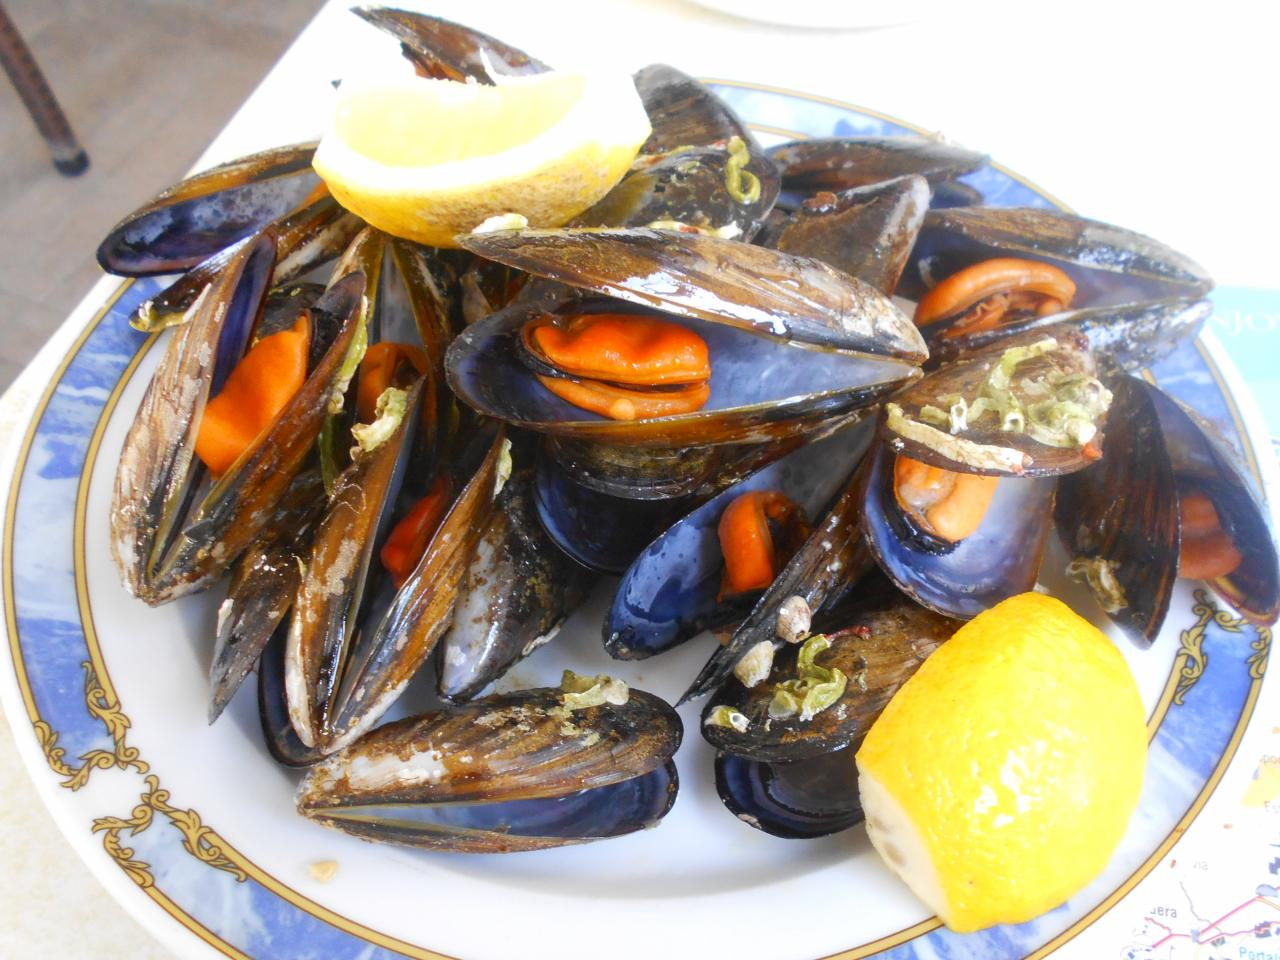 The mussels were plump and flavourful